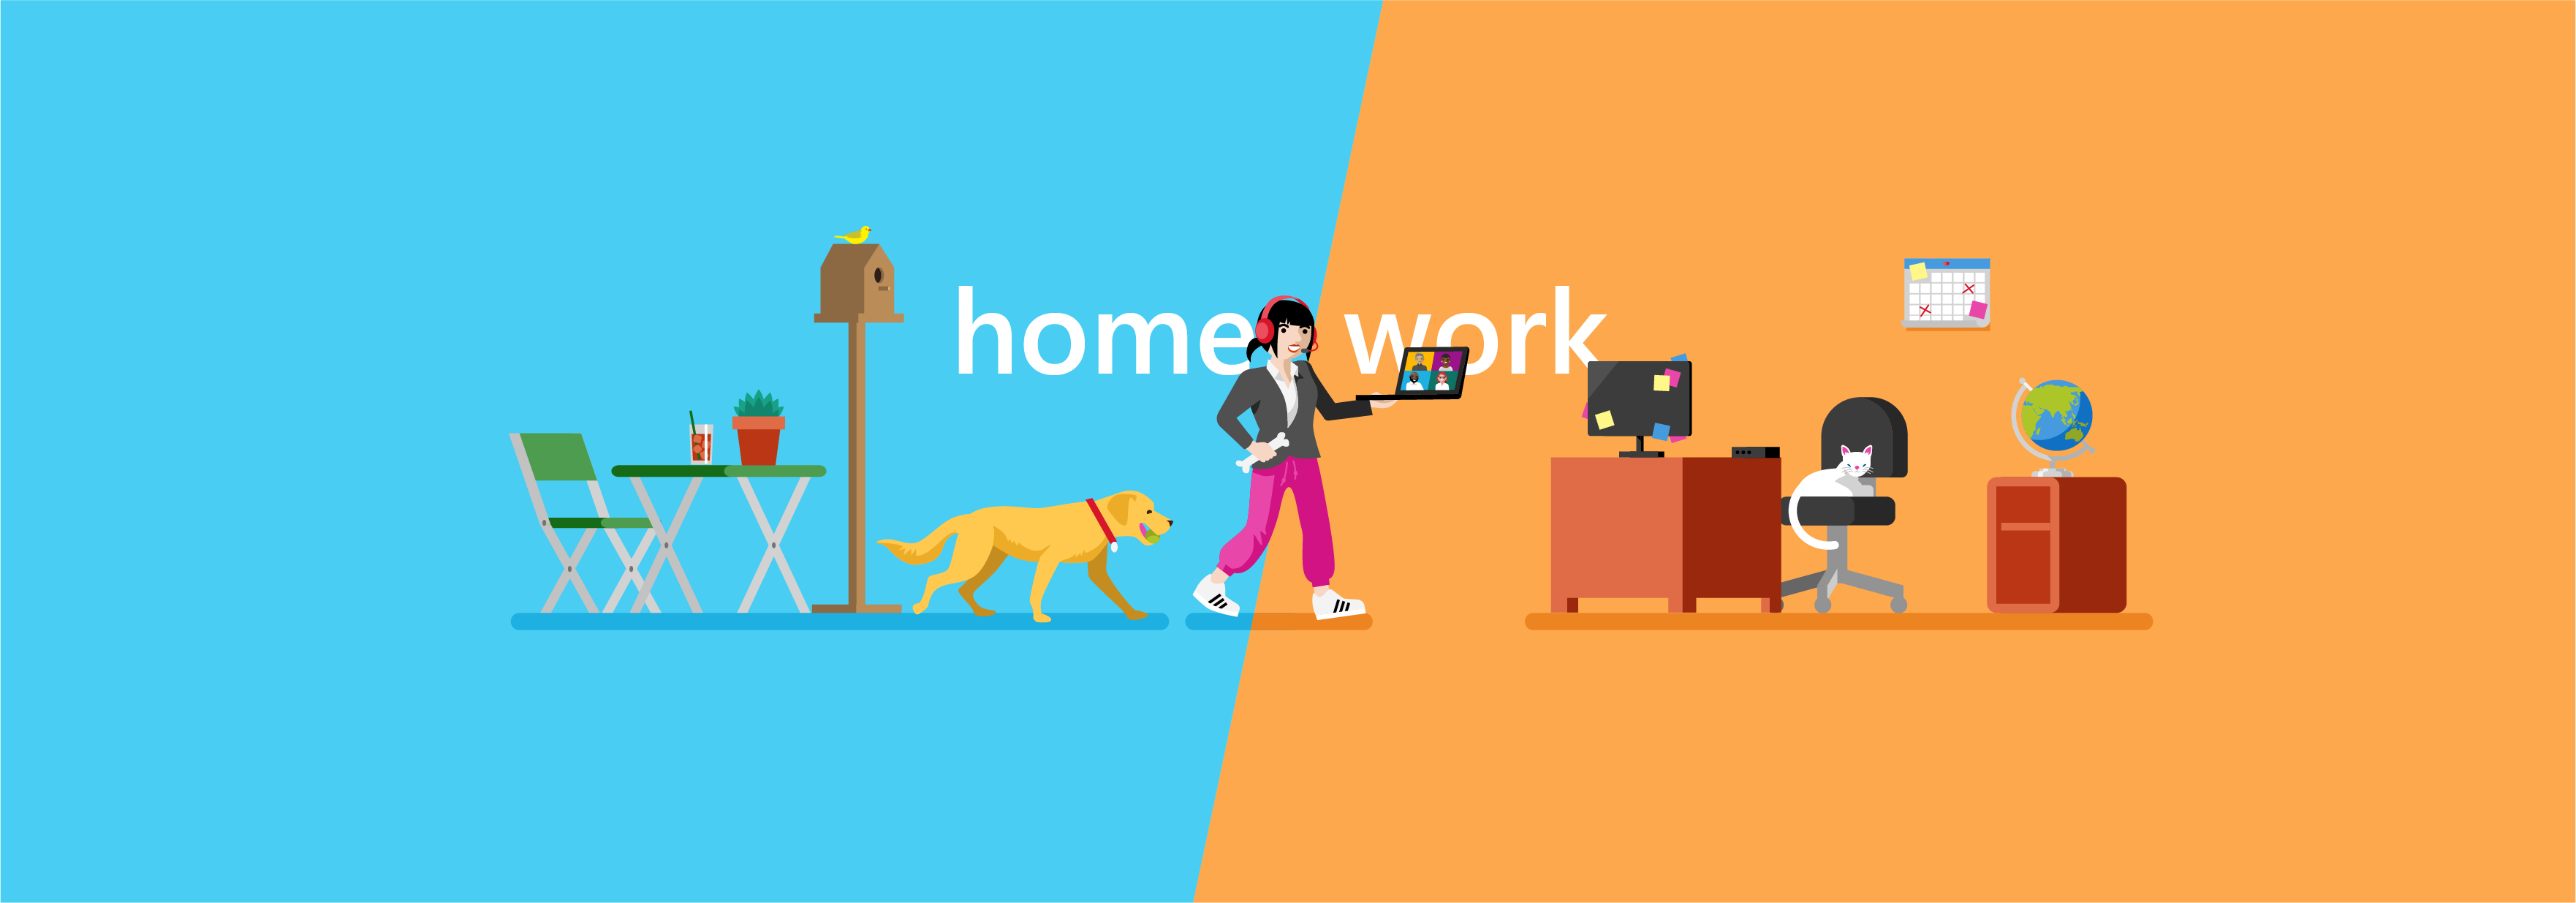 Illustration of a woman managing remote work with a dog, home office, and joining a Teams meeting on her computer